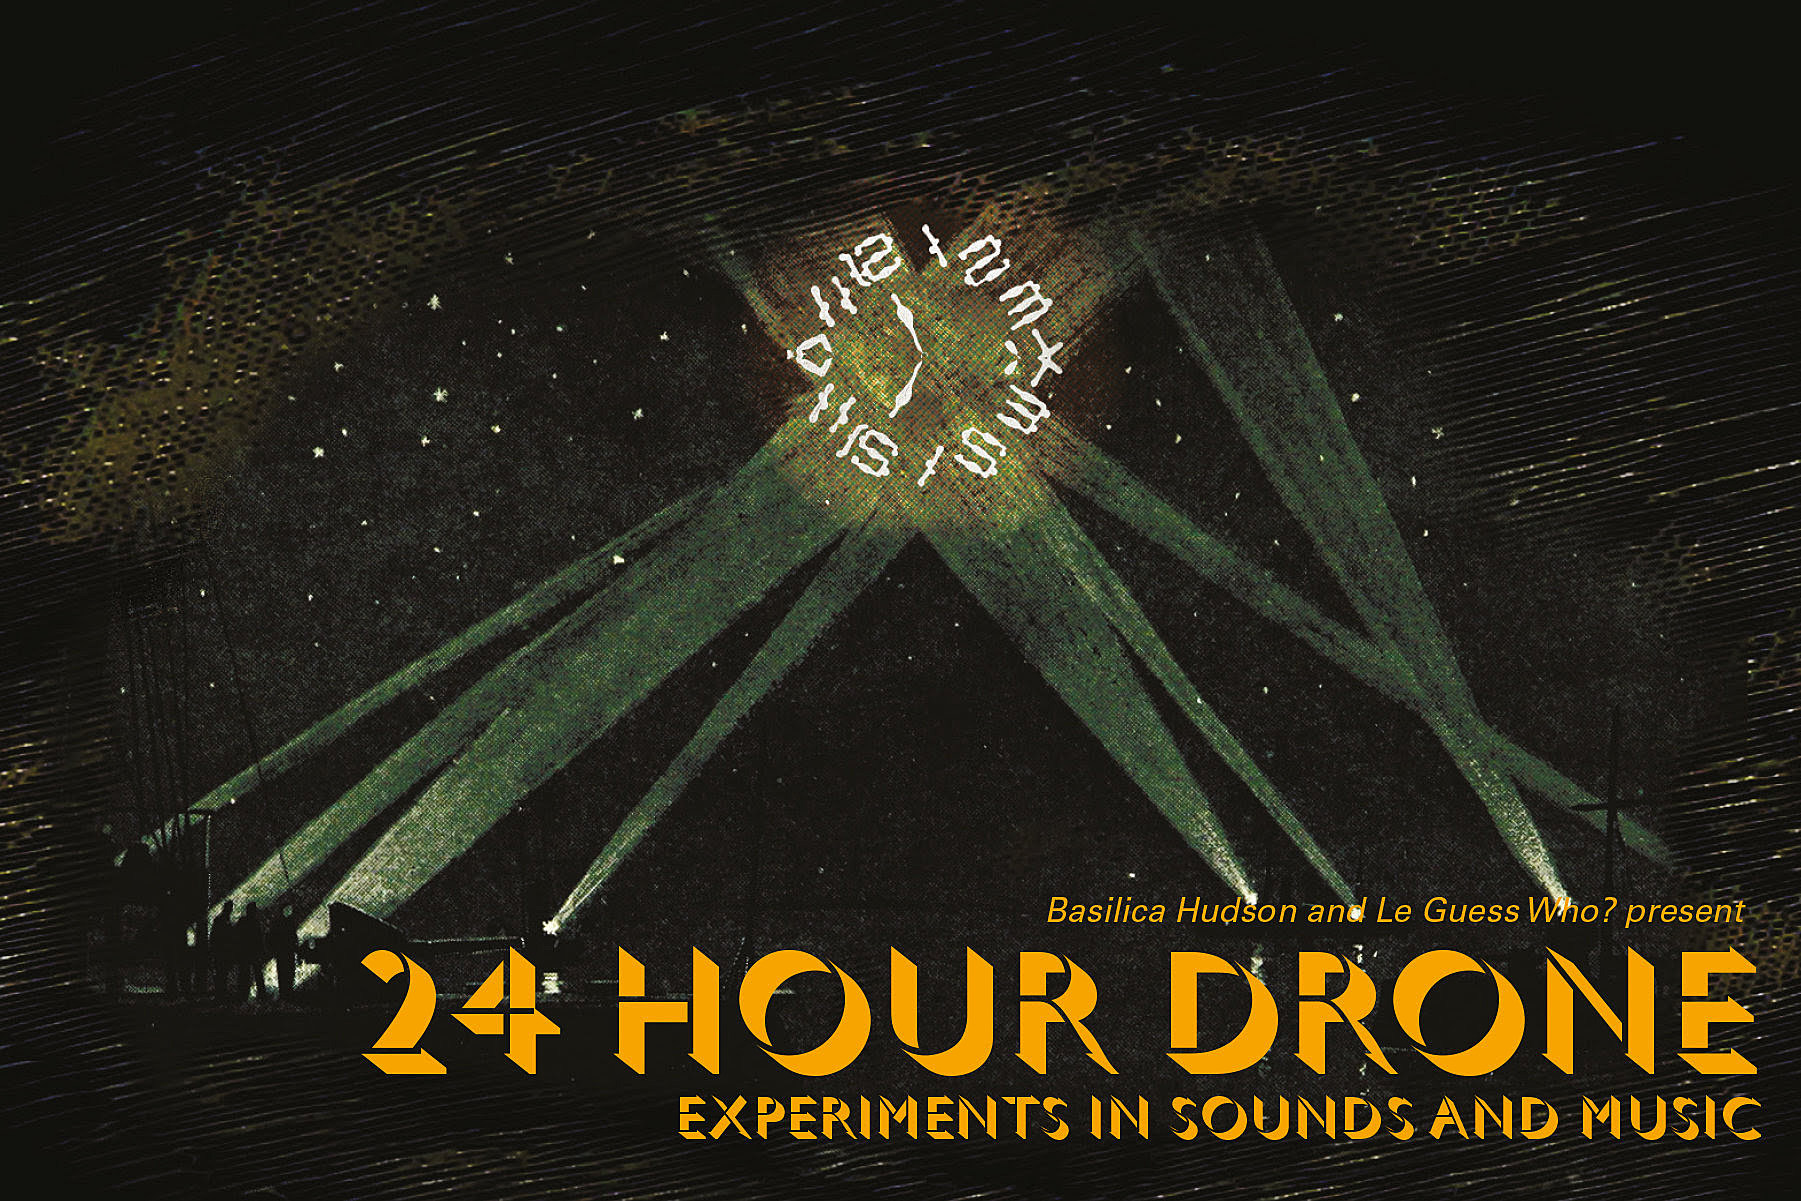 24 Hour Drone